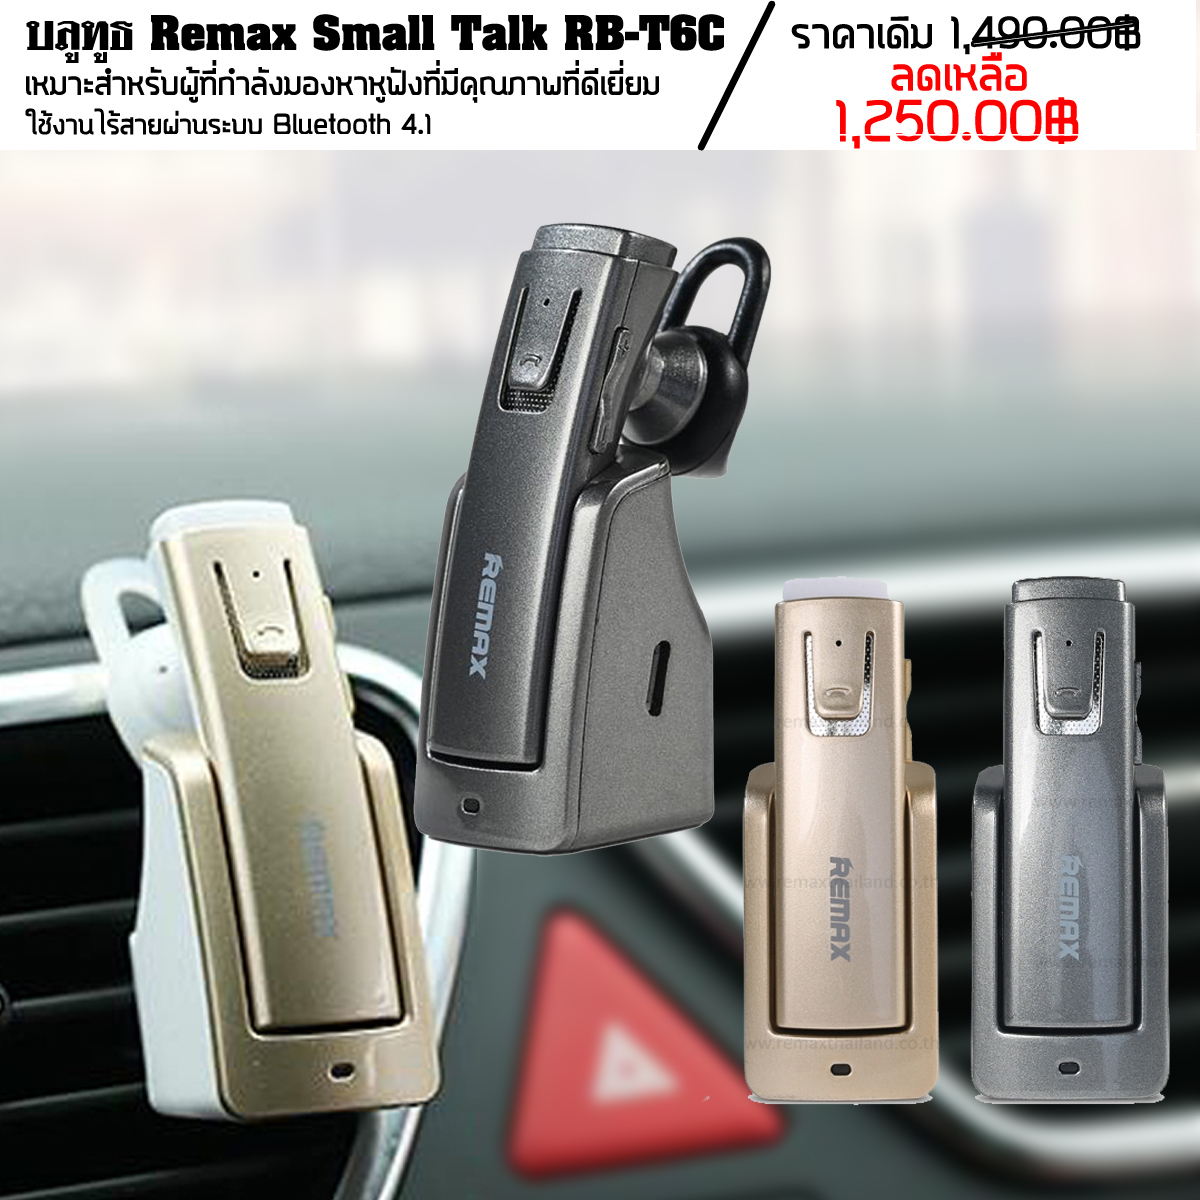 Remax Small Talk RB-T6C